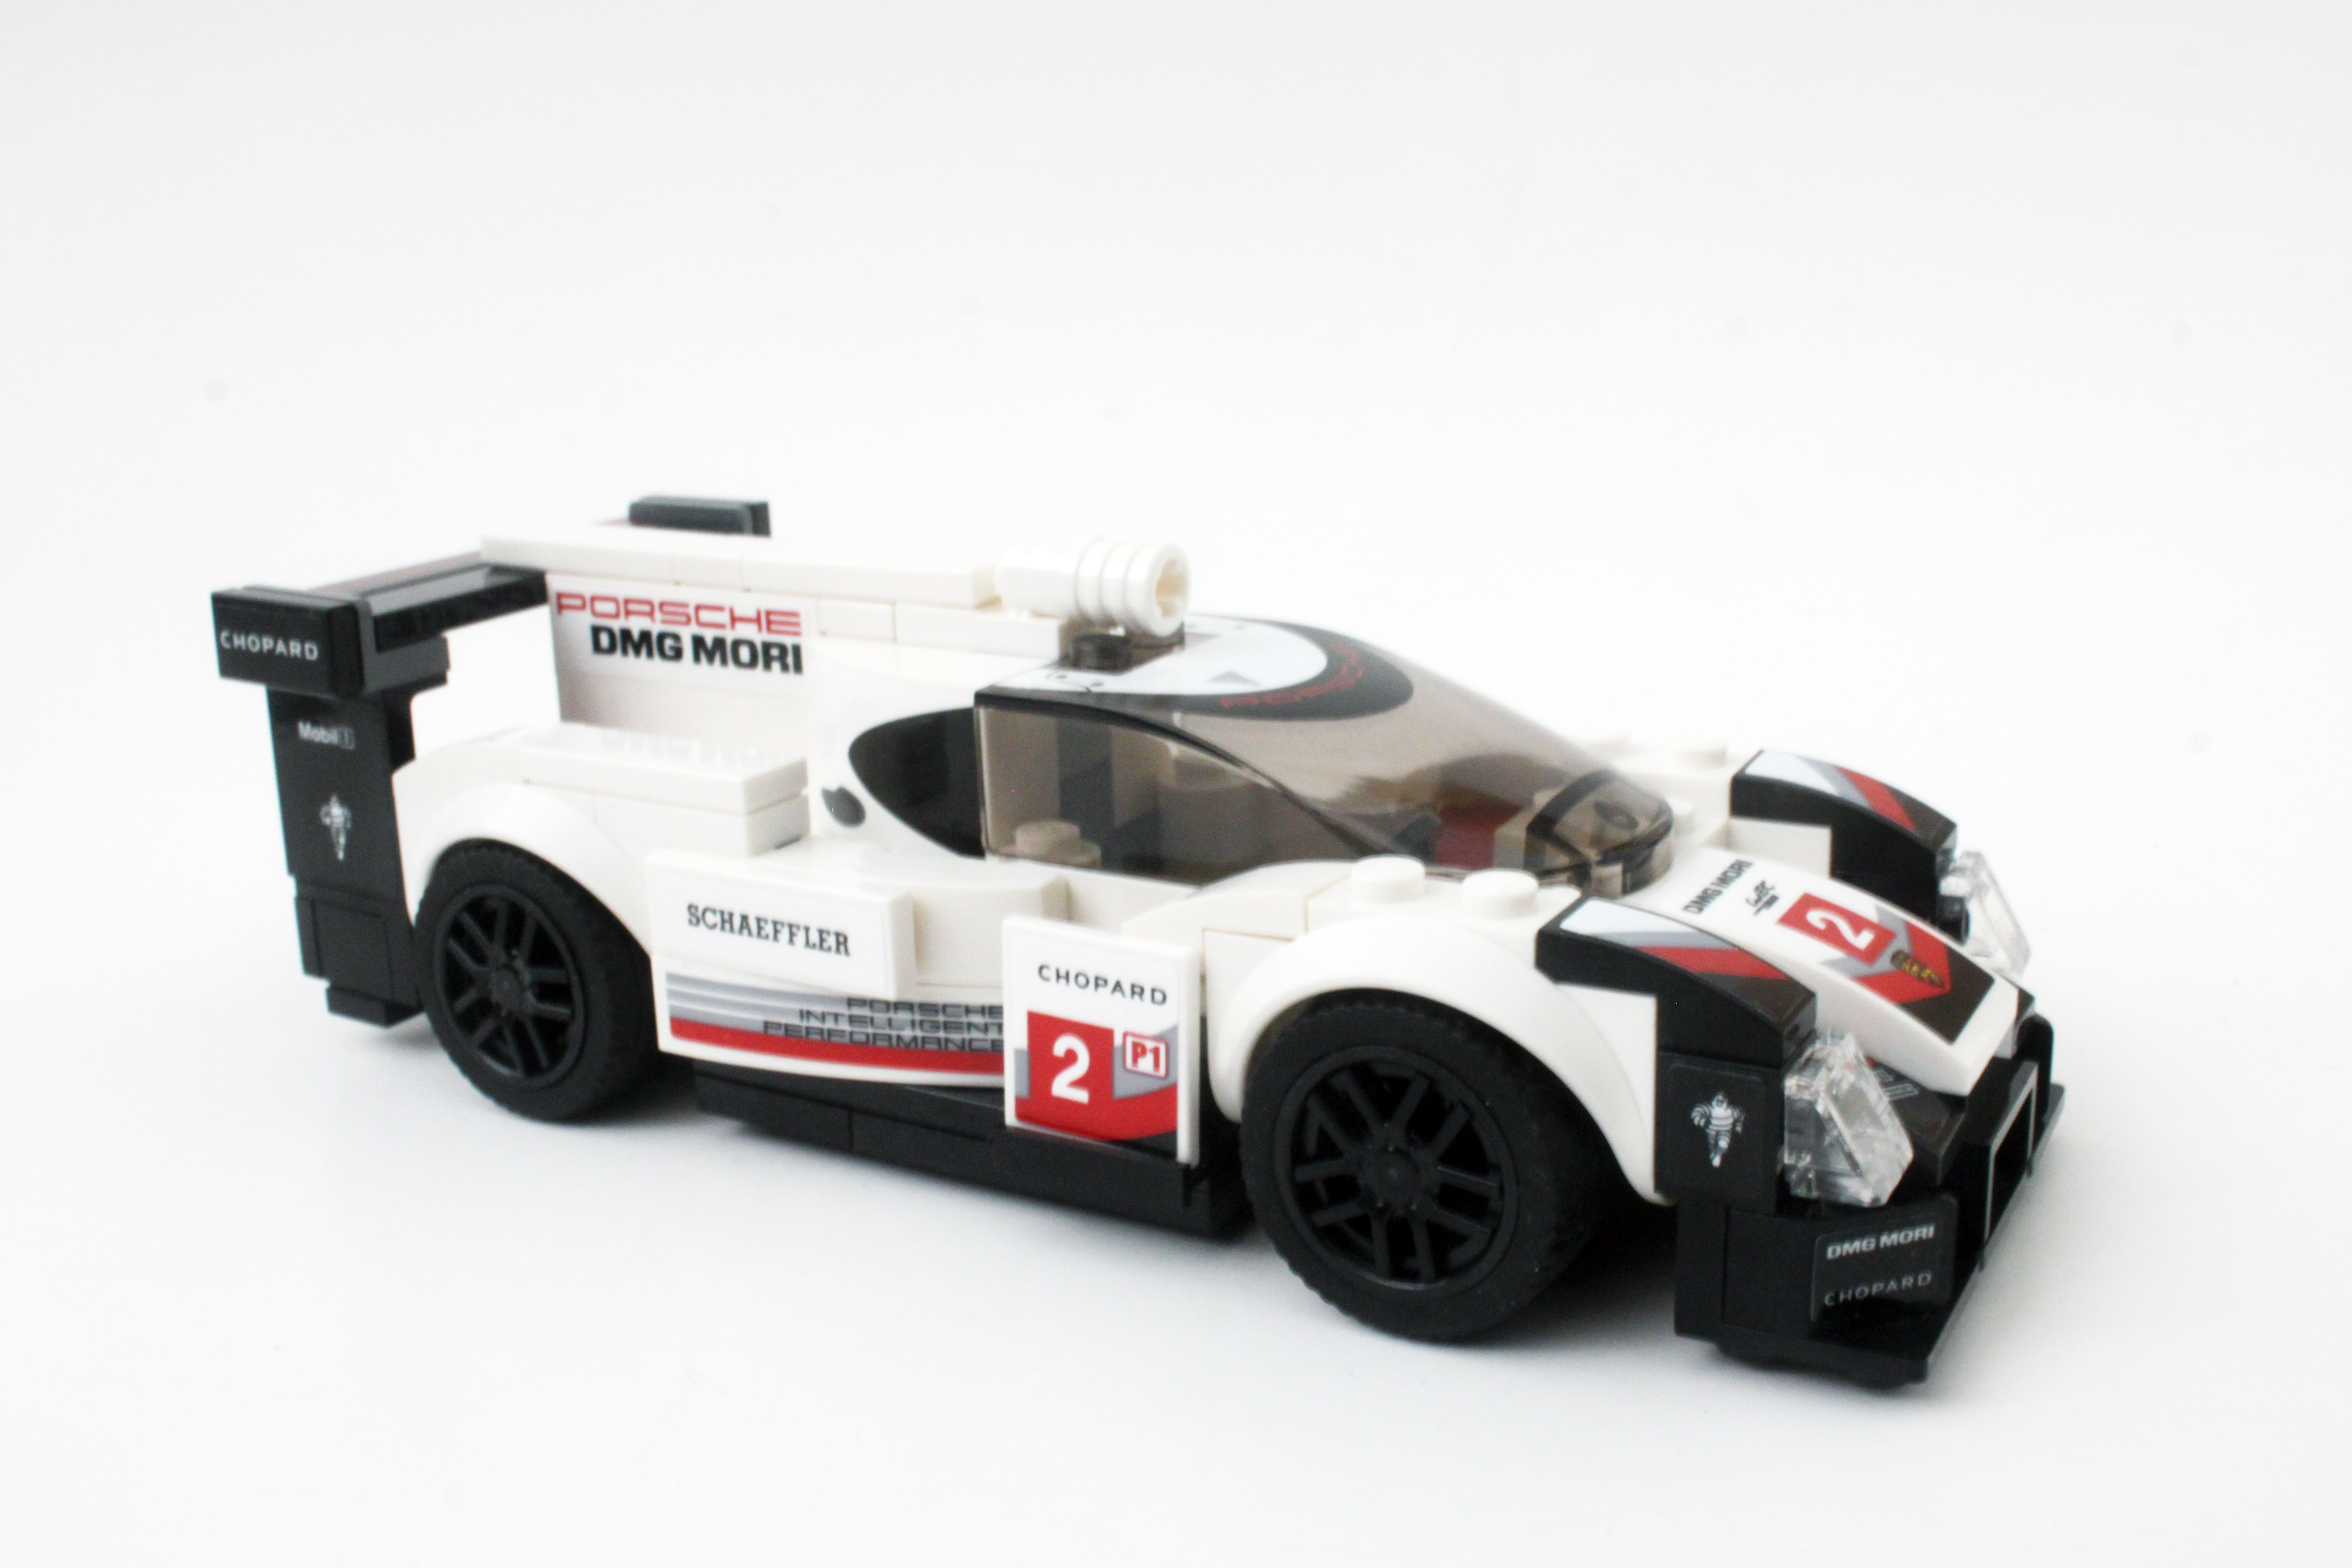 Lego Speed Champions Porsche 919 Hybrid 75887 Review